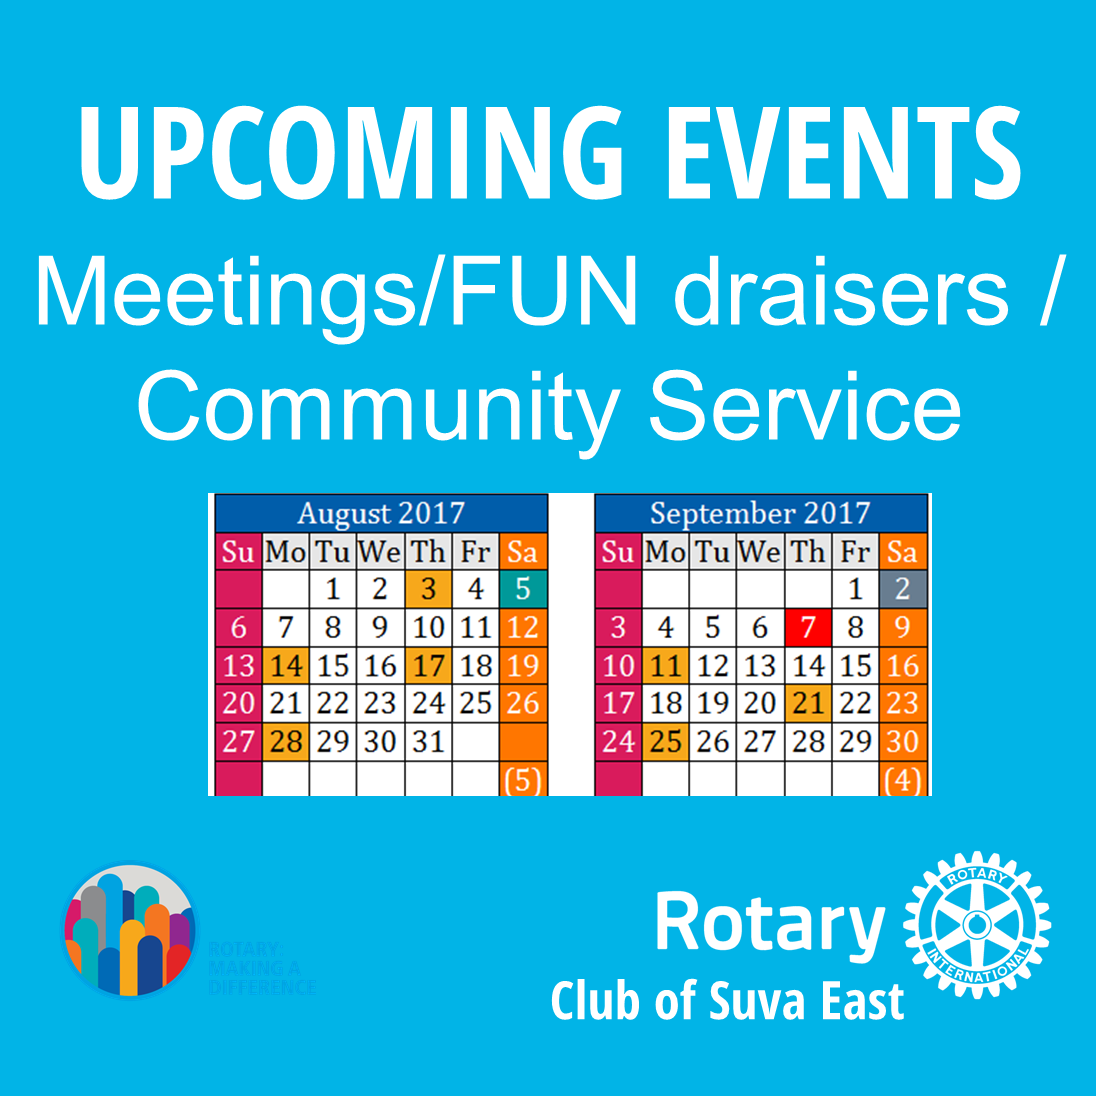 UPCOMING EVENTS Meetings/FUN draisers / Community Service